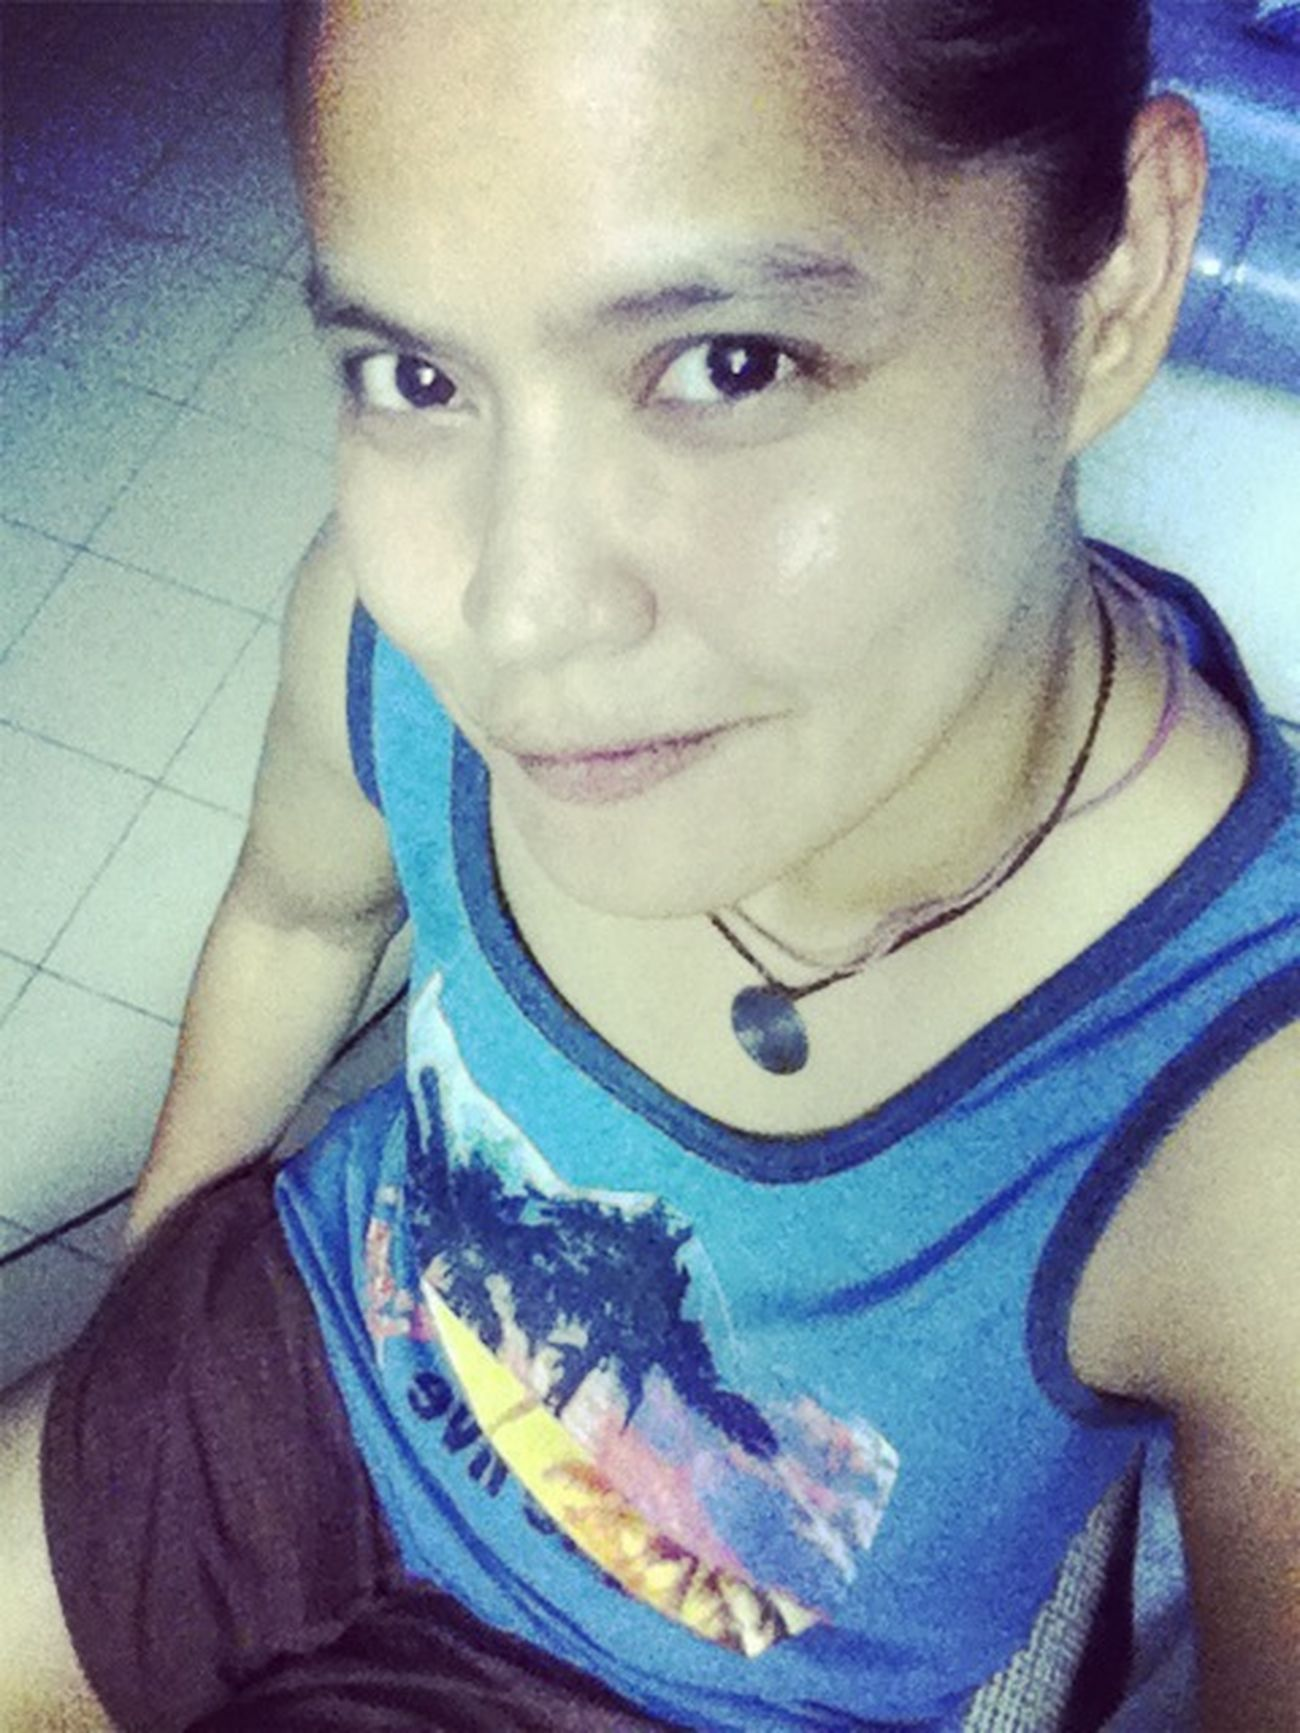 Goodlooking Muscles Body & Fitness Weighttraining Gotogym It's Me Be Happy Relaxing Thailand Myface